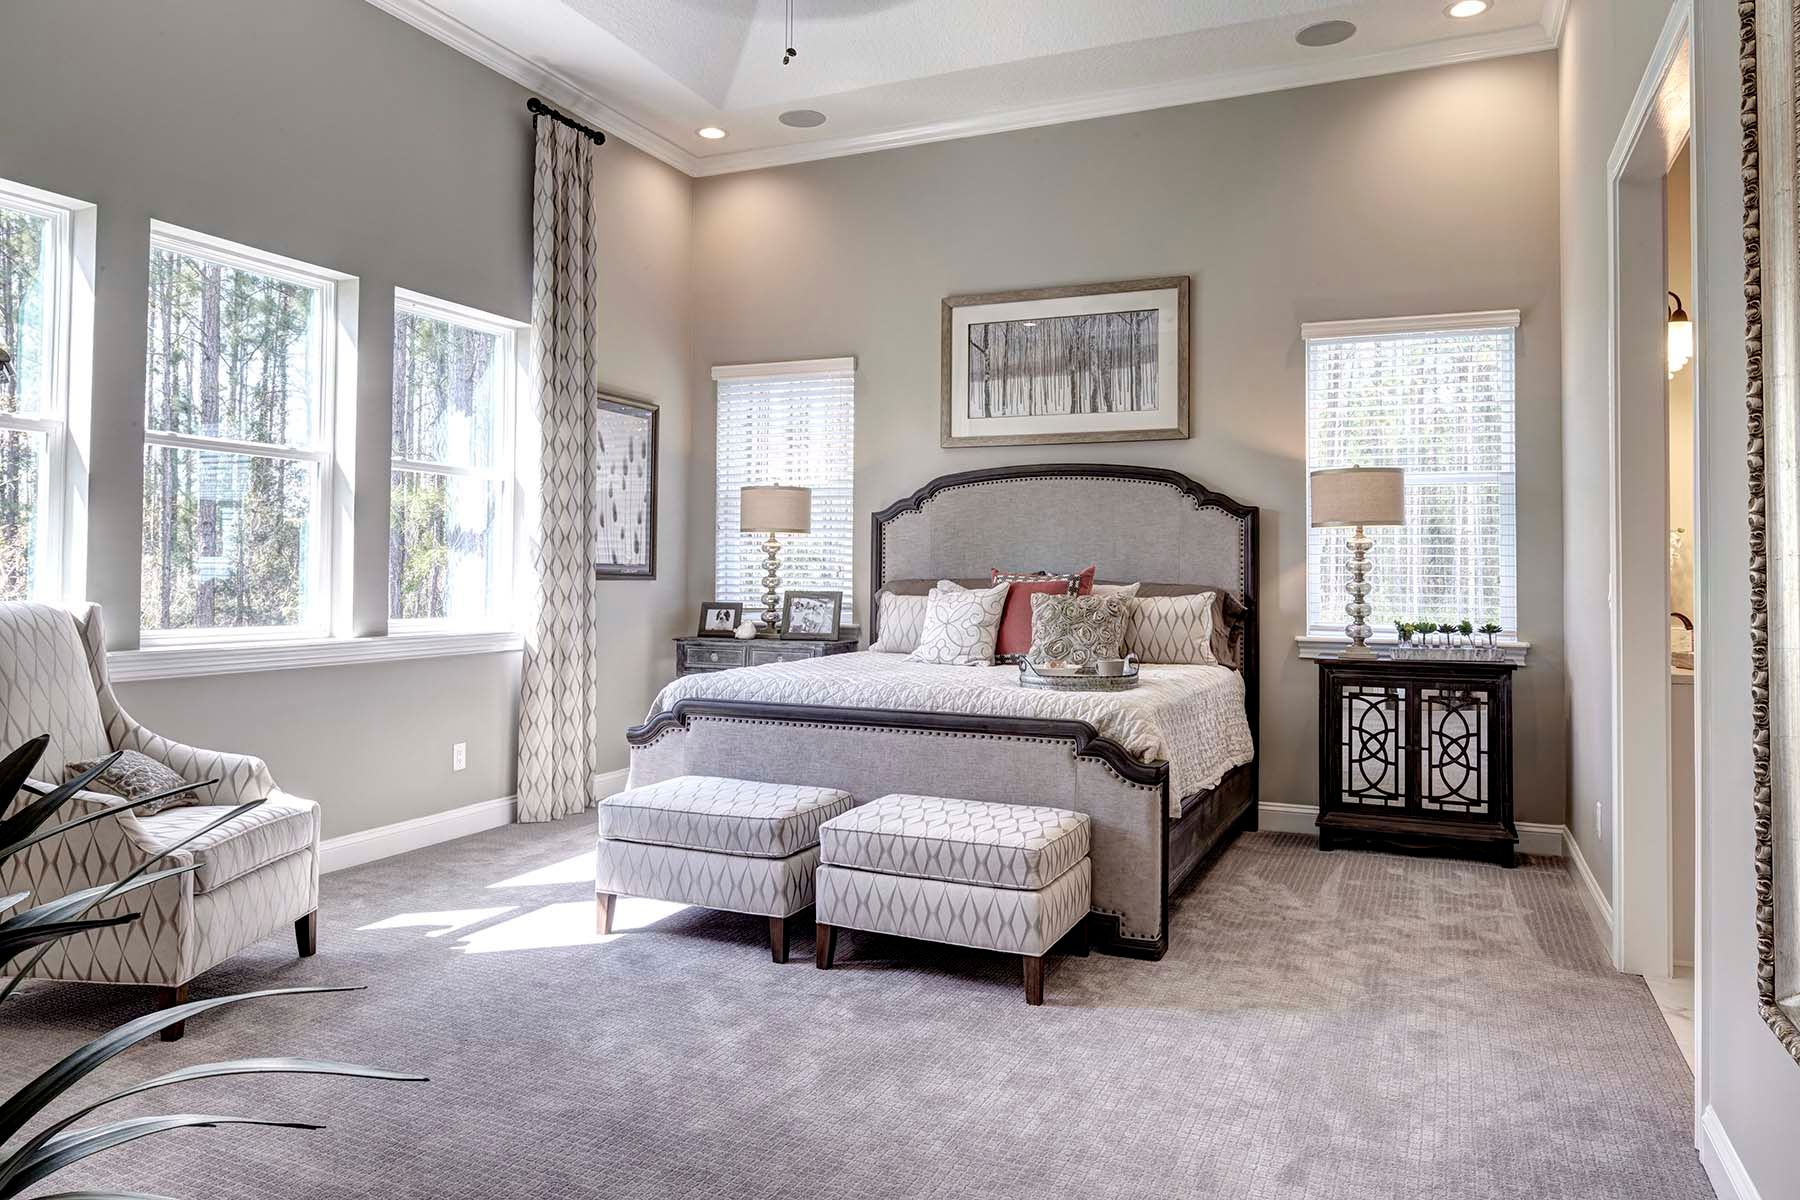 Bedroom featured in the Iris By Mattamy Homes in Jacksonville-St. Augustine, FL